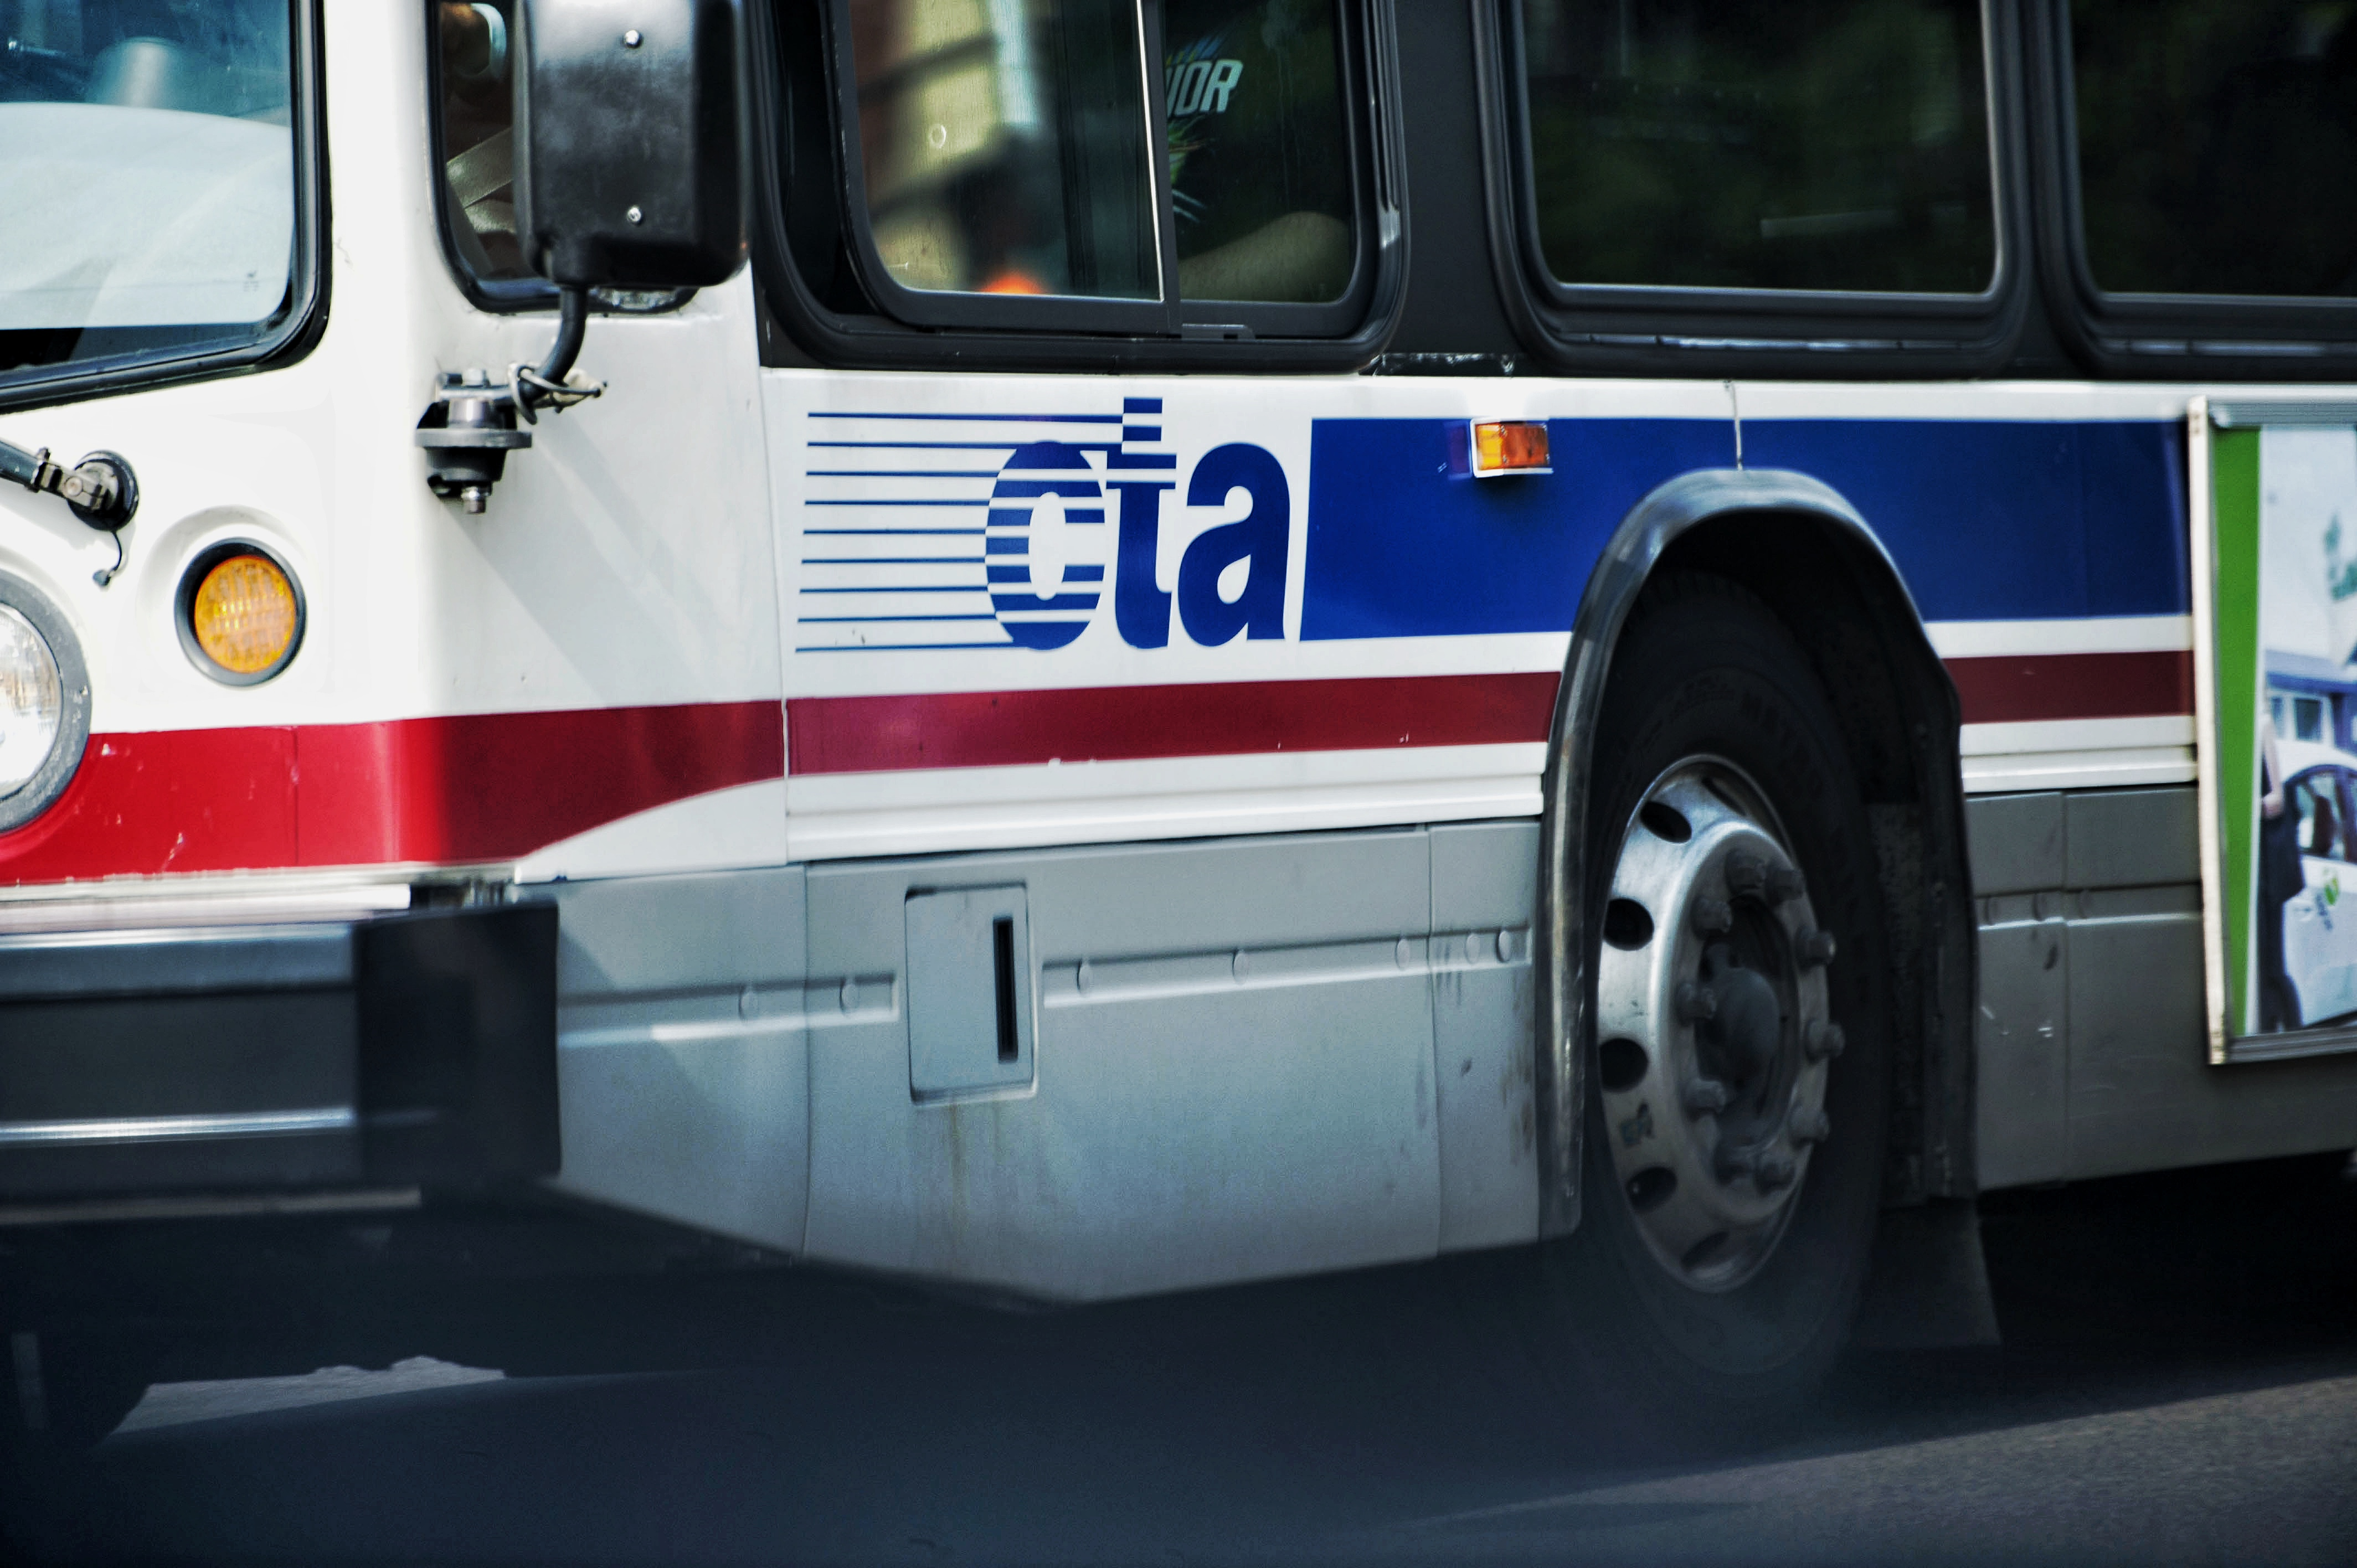 A man was pronounced dead after he was found unresponsive on a CTA bus Dec. 27, 2019 in the Loop,